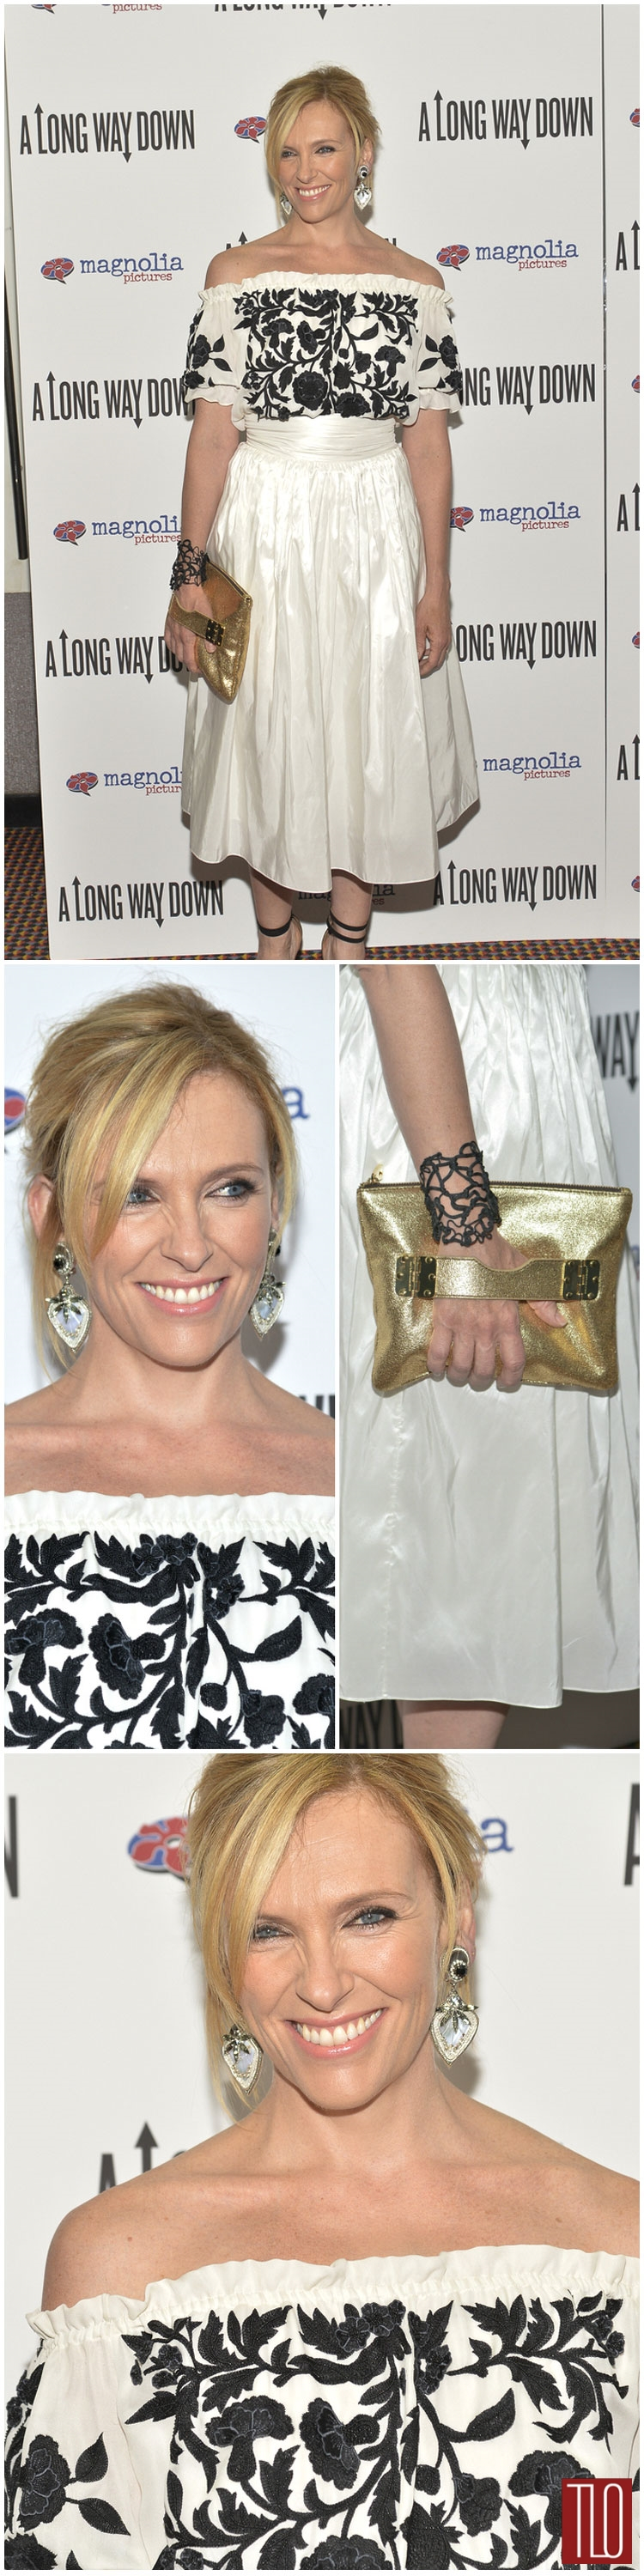 Toni-Collette-Naeem-Khan-A-Long-Way-Down-New-York-Movie-Premiere-Red-Carpet-Tom-Lorenzo-Site-TLO (2)